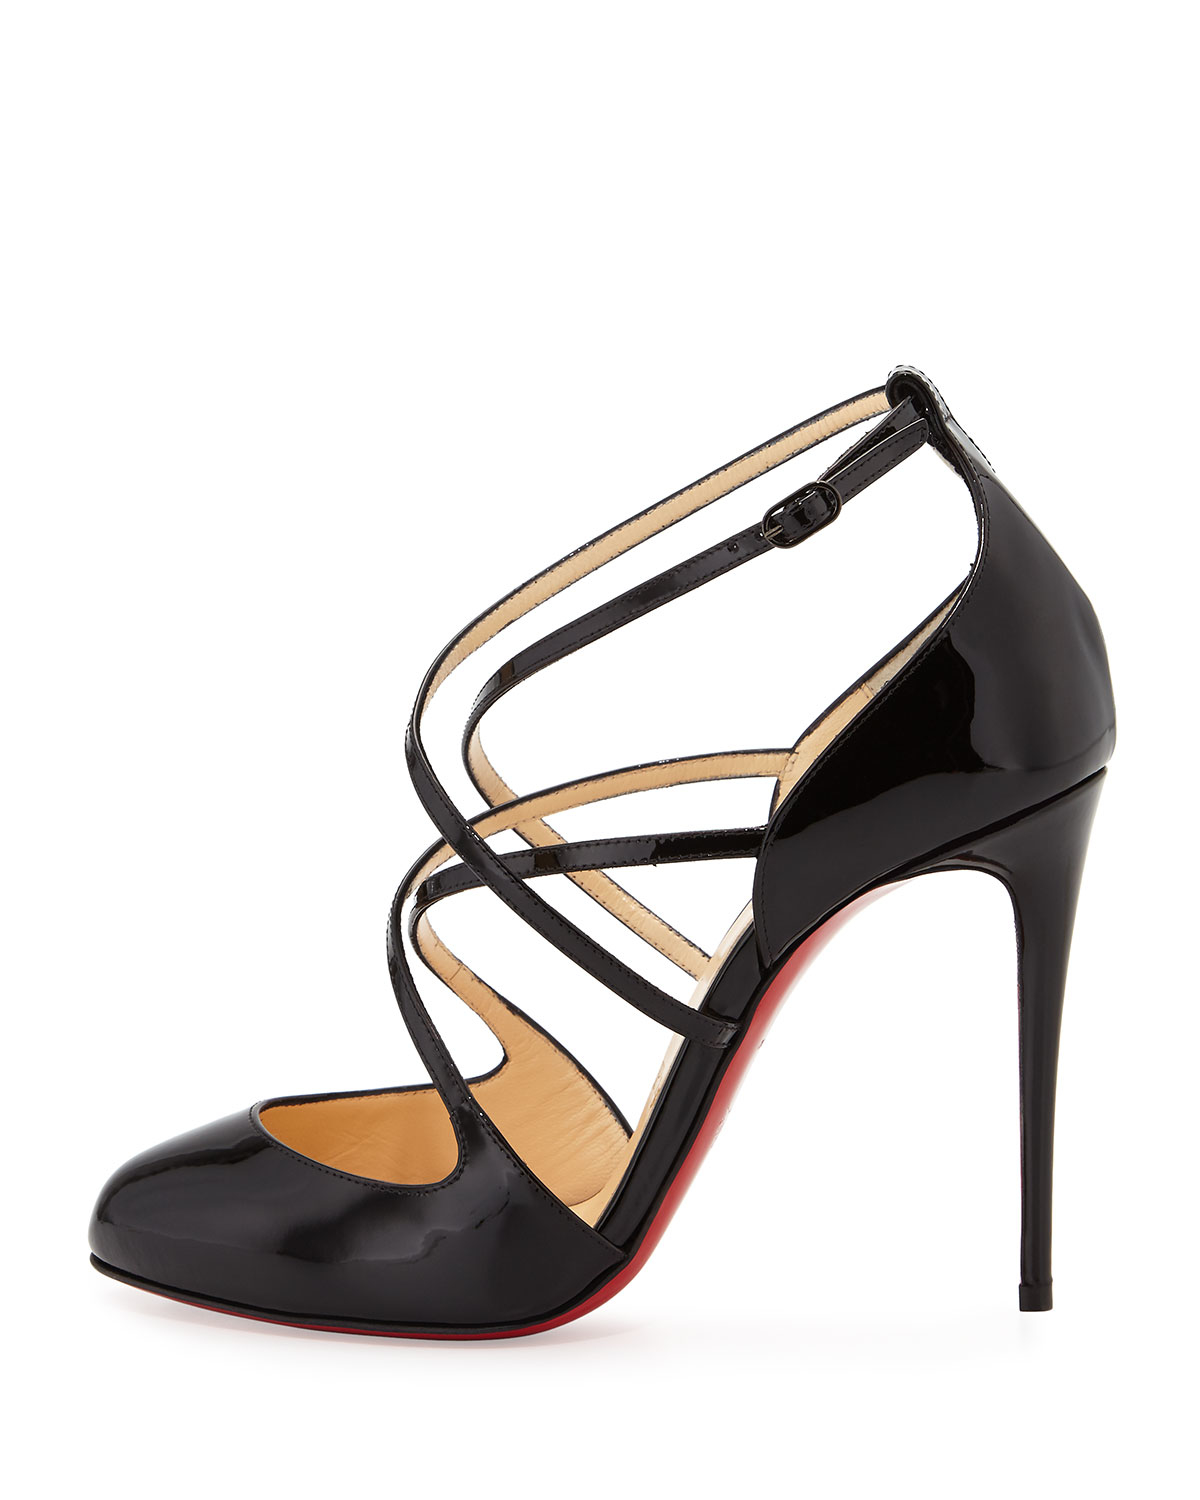 mens red bottom loafers - Christian louboutin Soustelissimo Patent-Leather Pumps in Black | Lyst